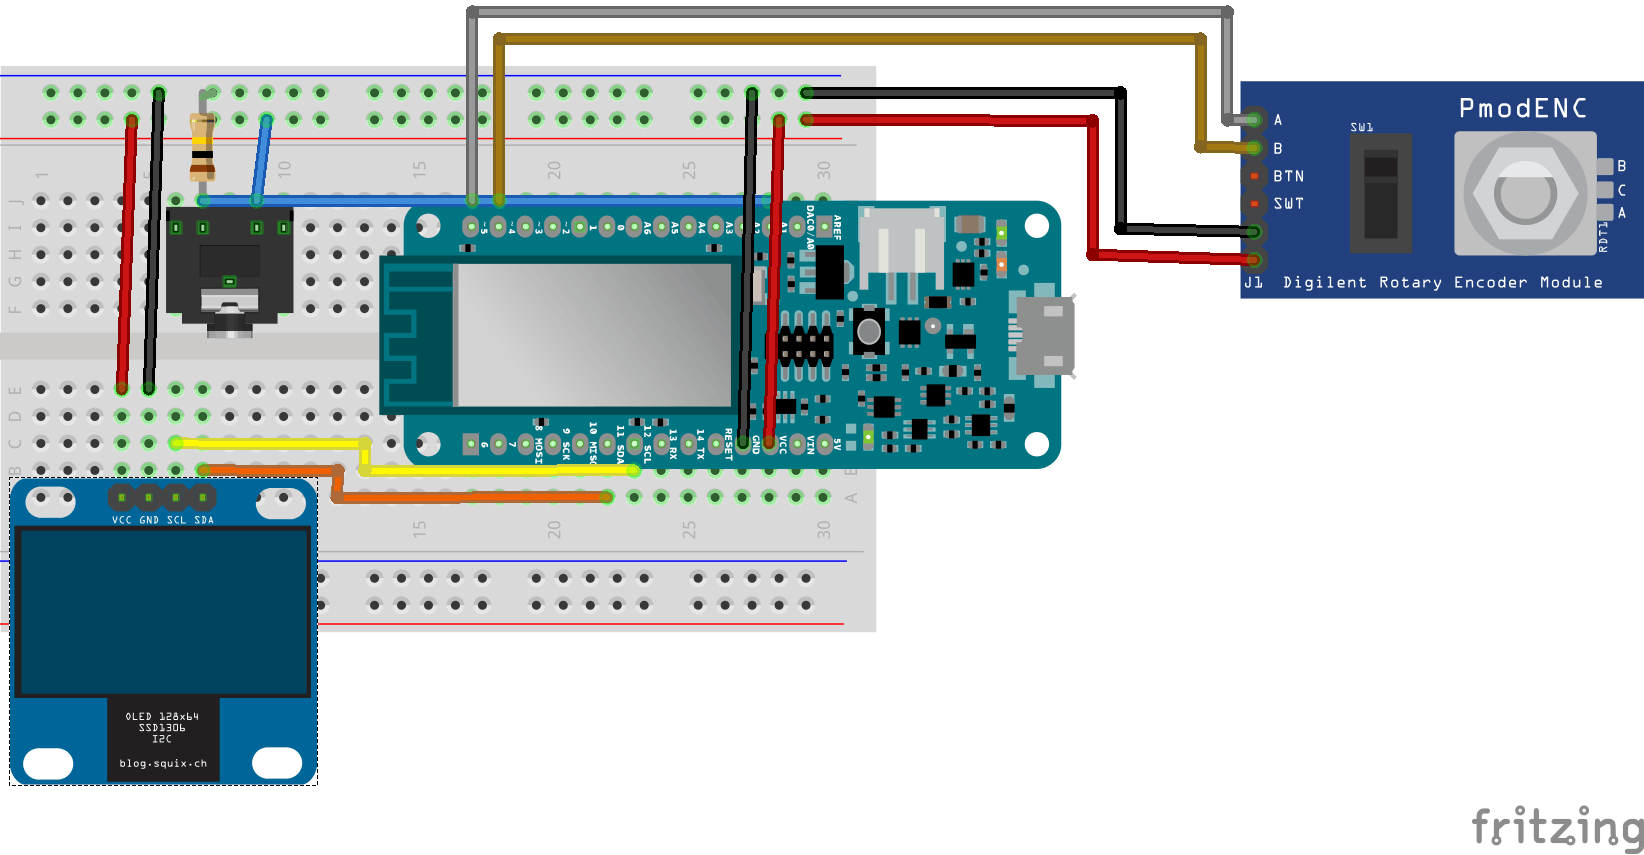 Arduino MKR1000 with rotary encoder, OLED and connector for the thermometer